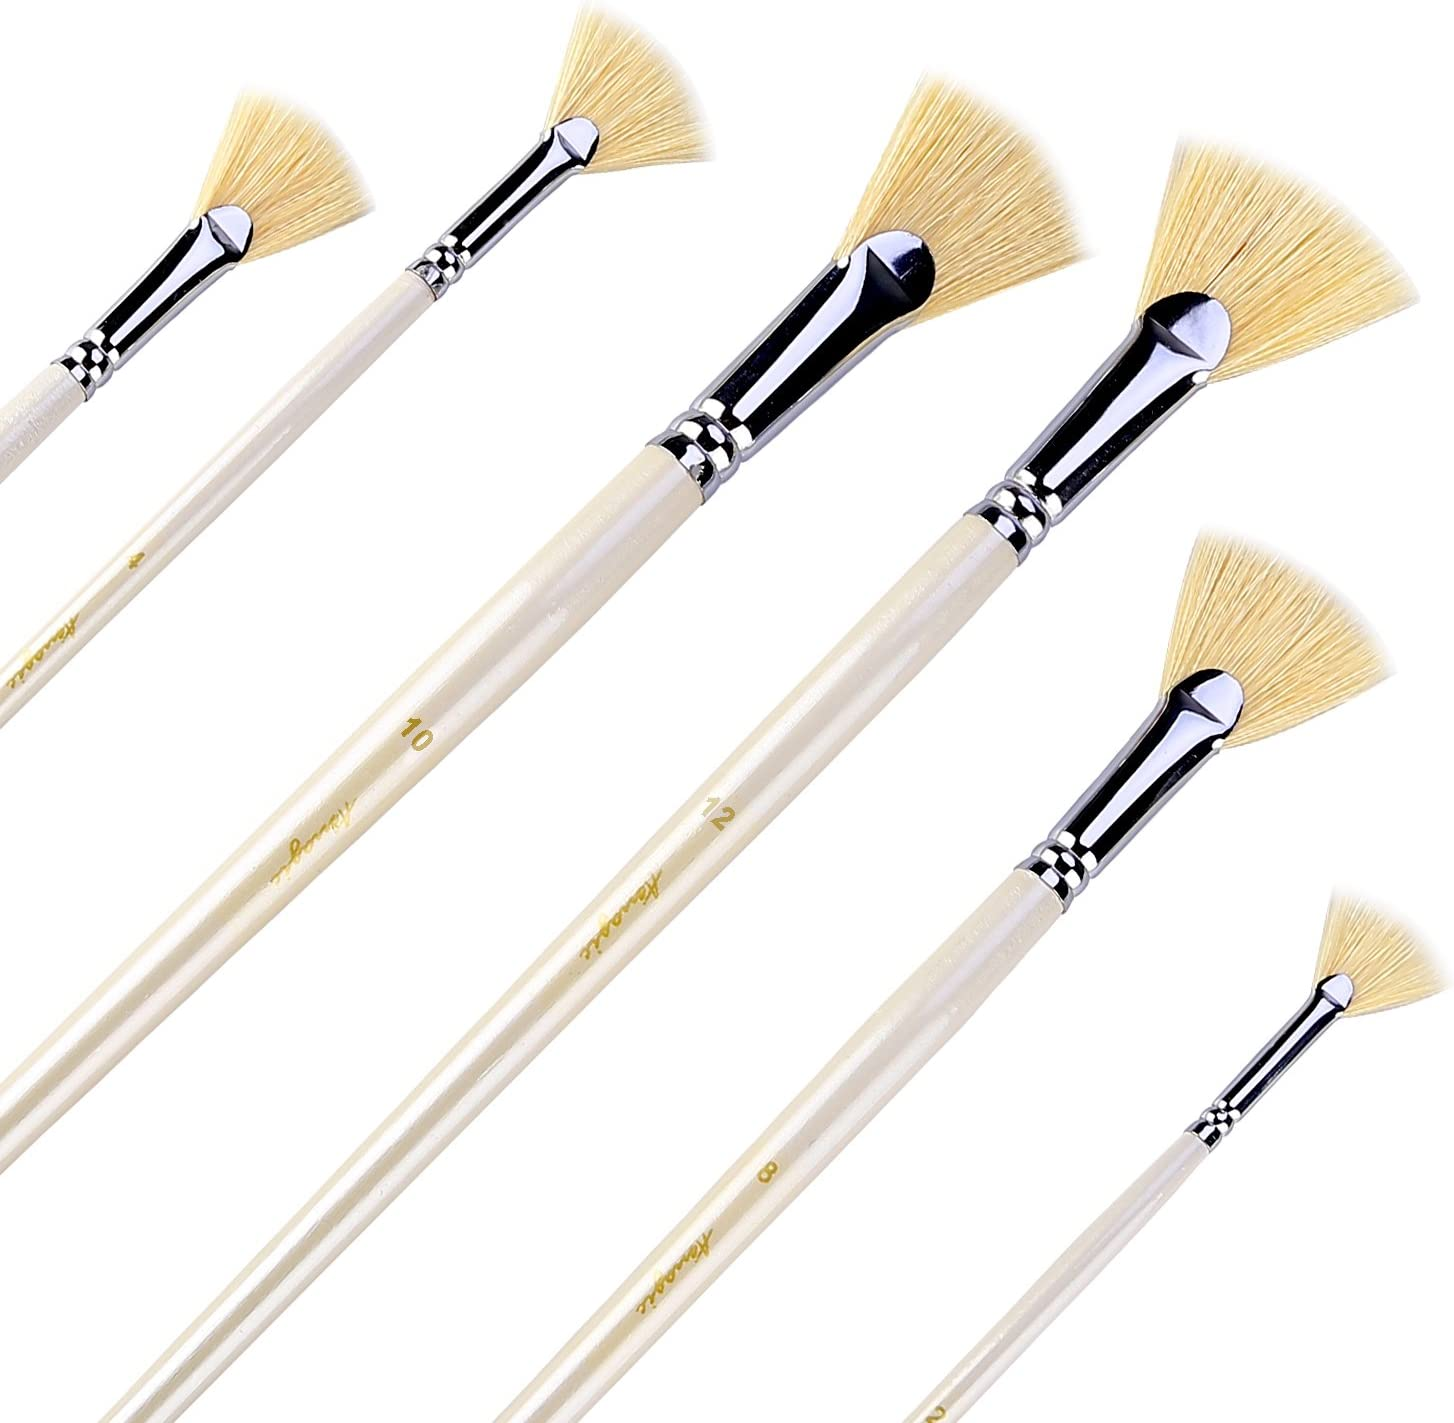 Amazon.com: Amagic Fan Brush Set - Hog Bristle Natural Hair - Artist Soft  Anti-Shedding Paint Brushes for Acrylic Watercolor Oil Painting, Long Wood  Handle with Case, Set of 6